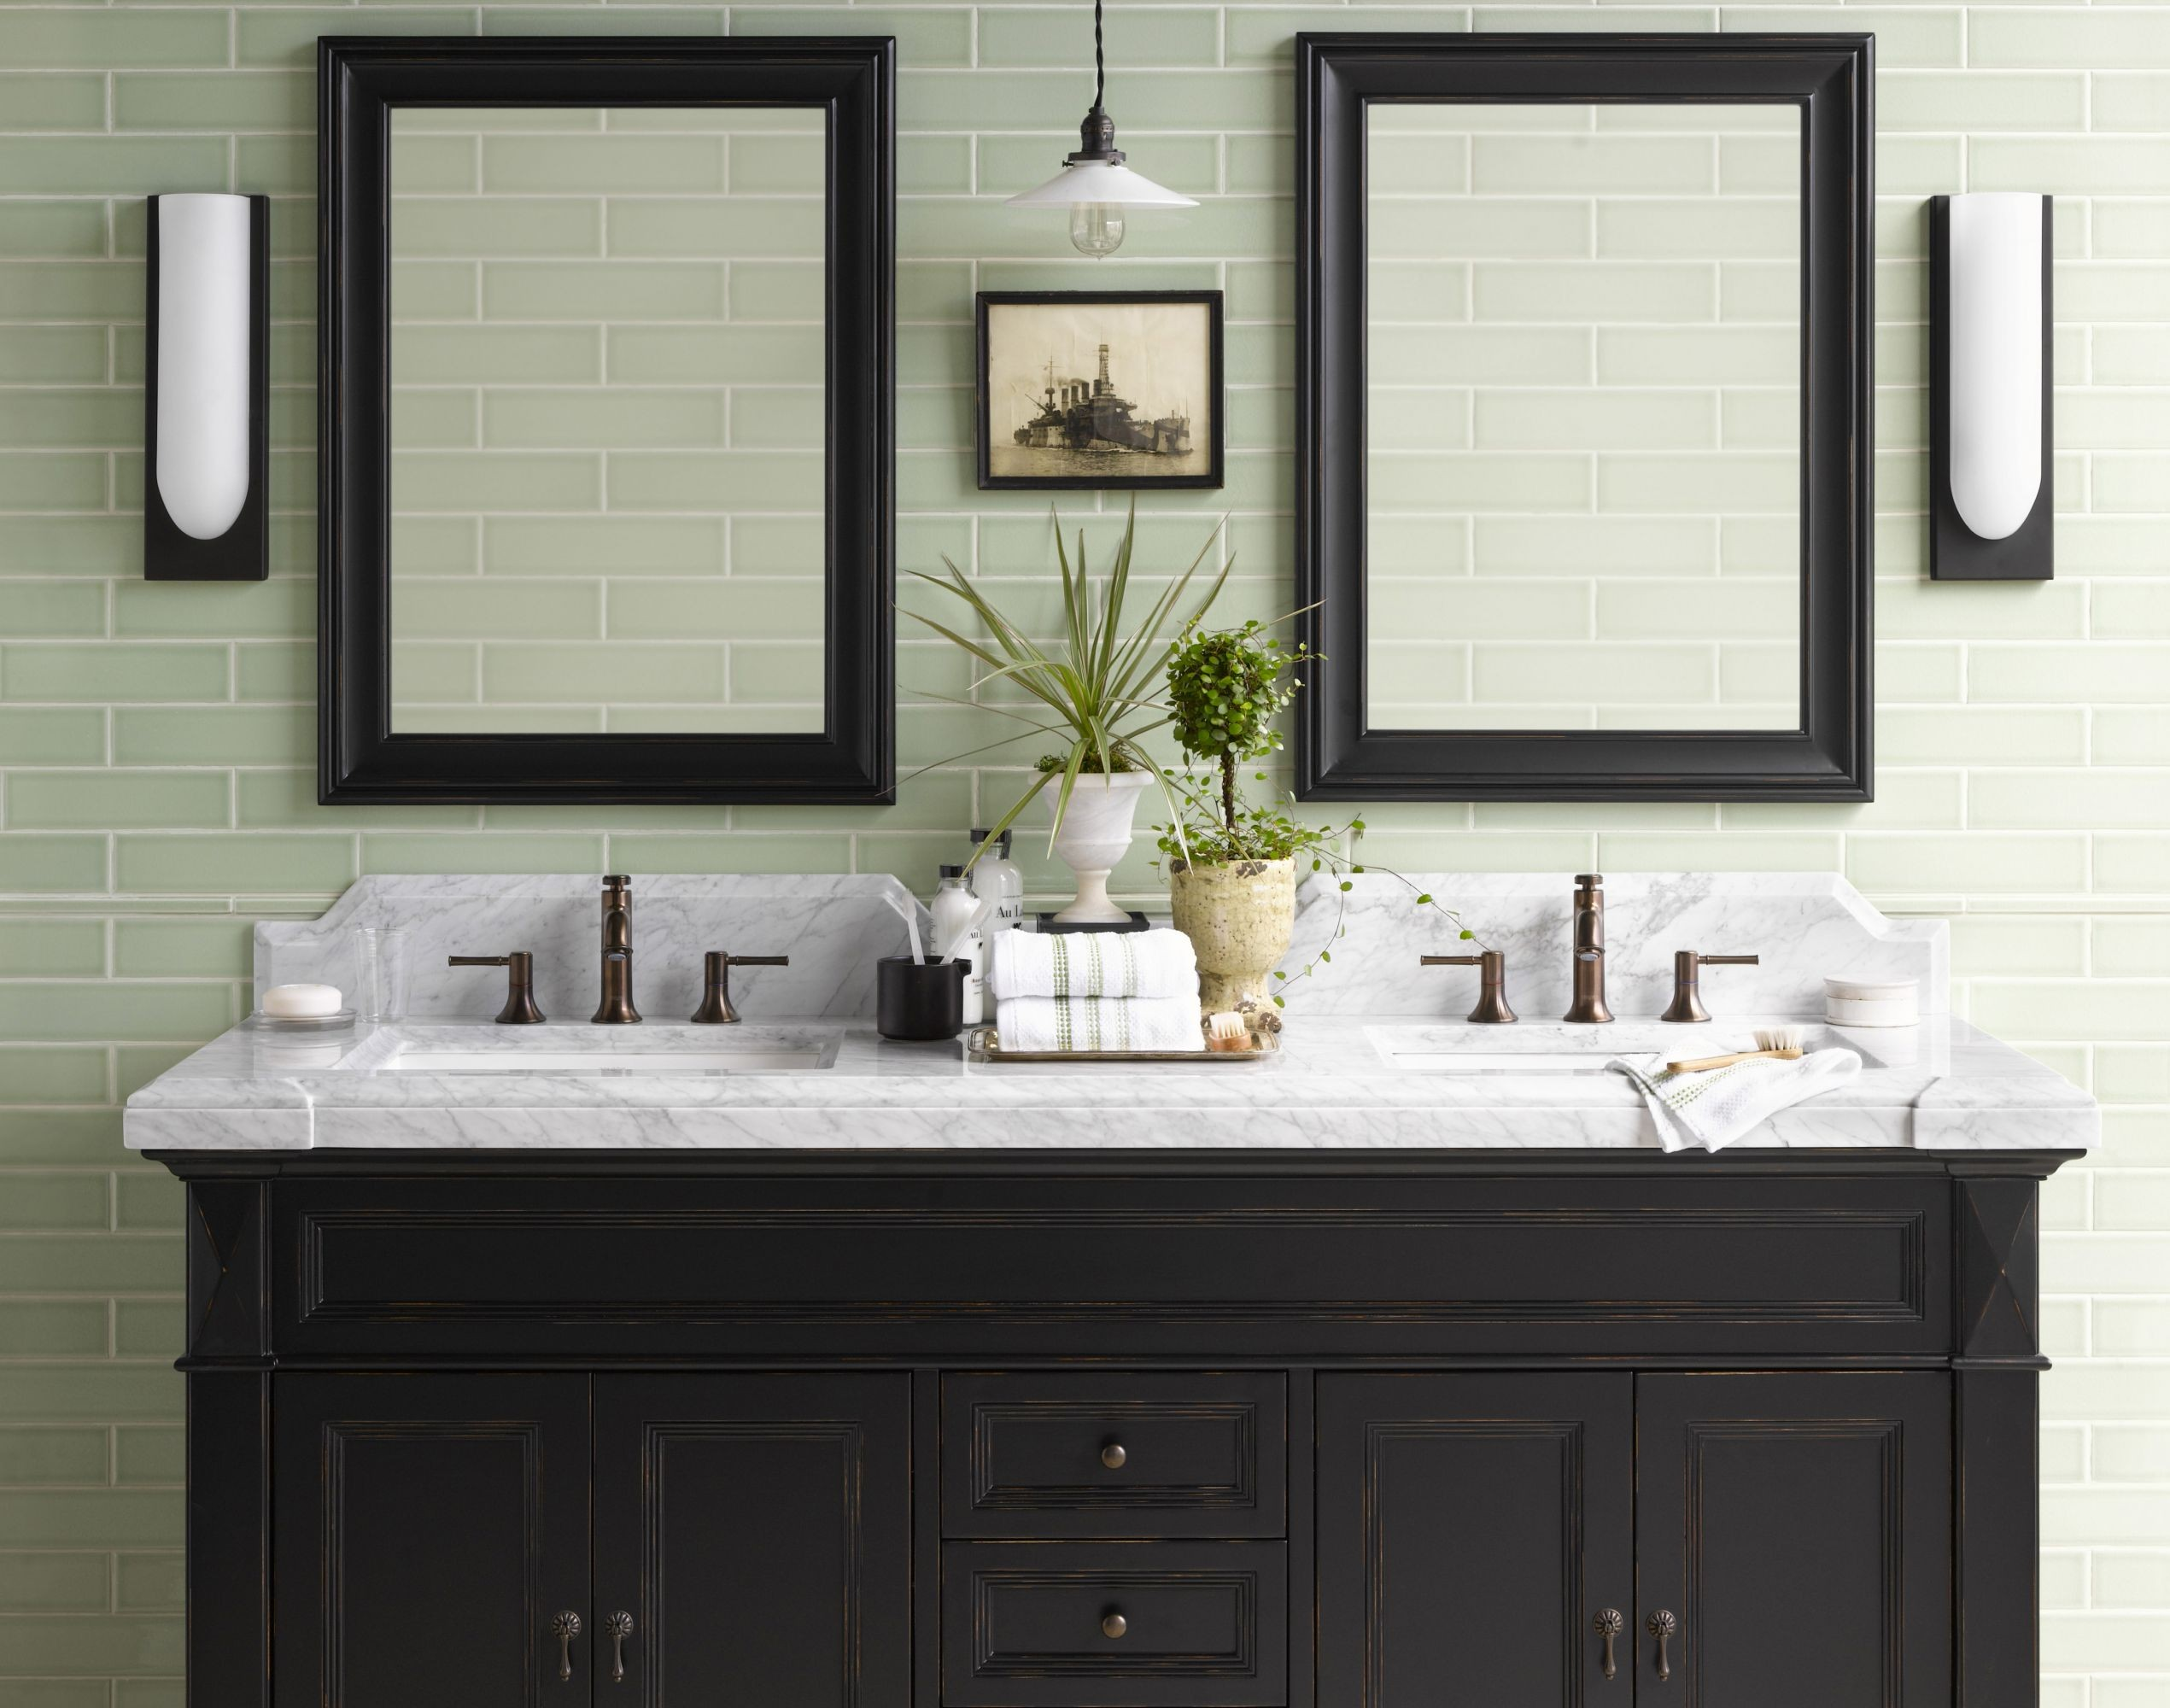 winsome-inspiration-ronbow-bathroom-vanities-medicine-cabinet-remarkable-laurel-with-tops-included-vanity